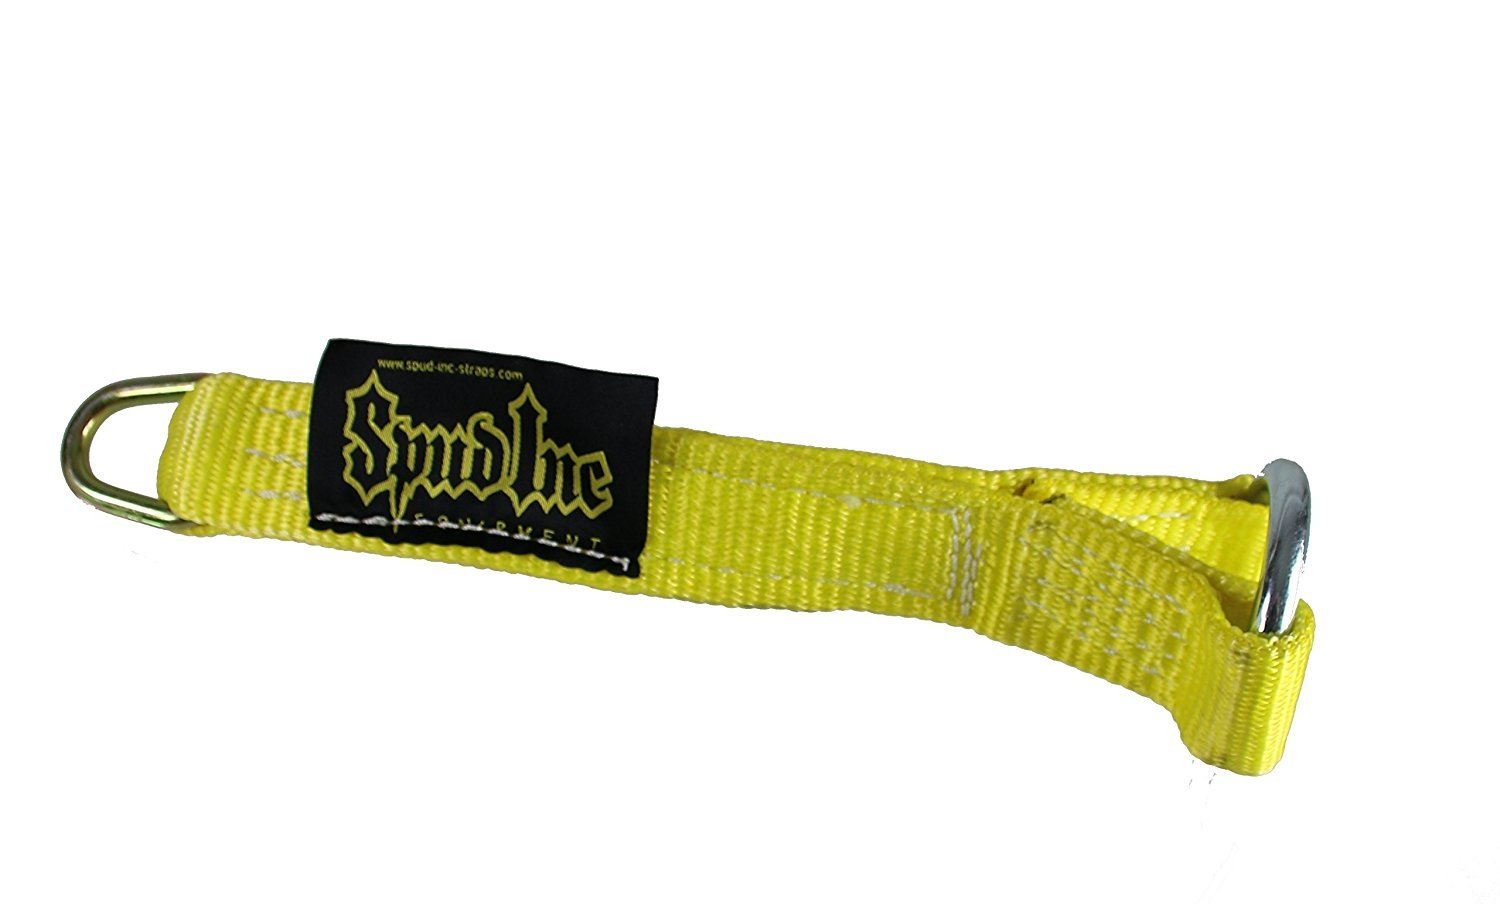 Spud Yellow Strap Loading Pin for Olympic Weight Plates. Use for Lat Pulldowns and more (18 inches Long)